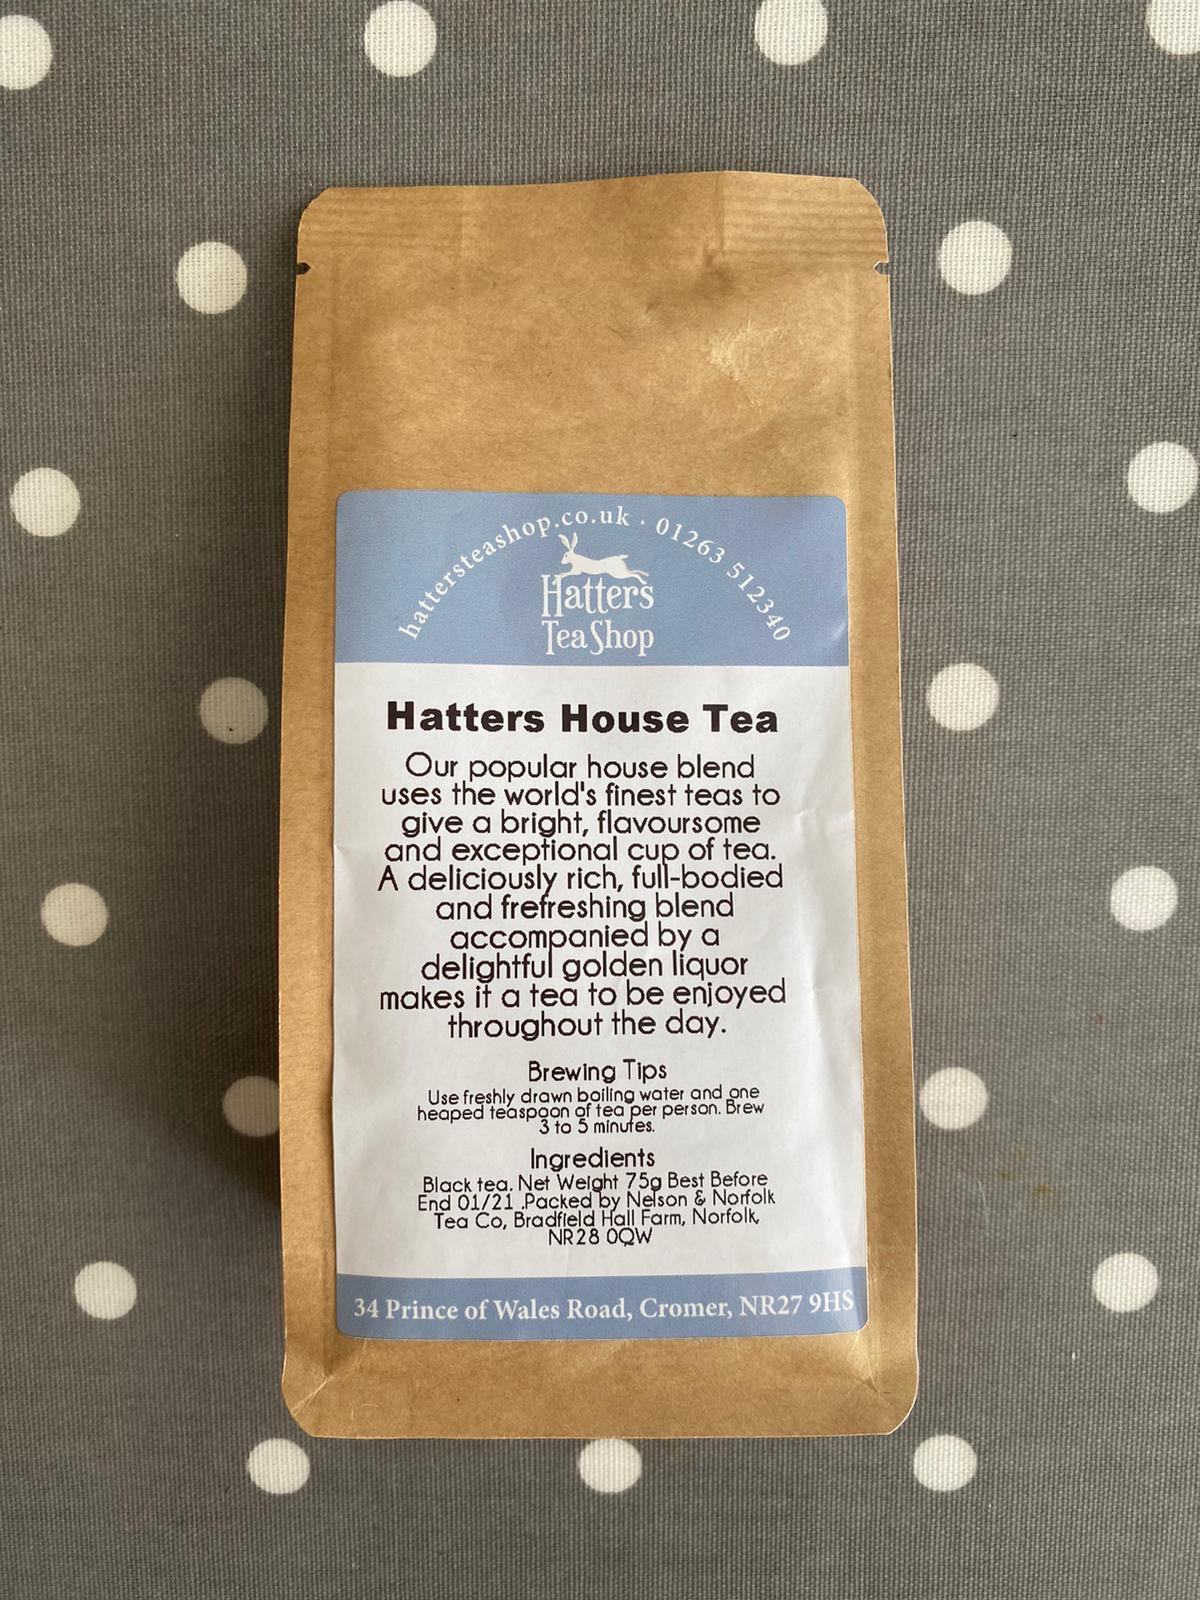 Hatters Loose Leaf Tea - House Tea